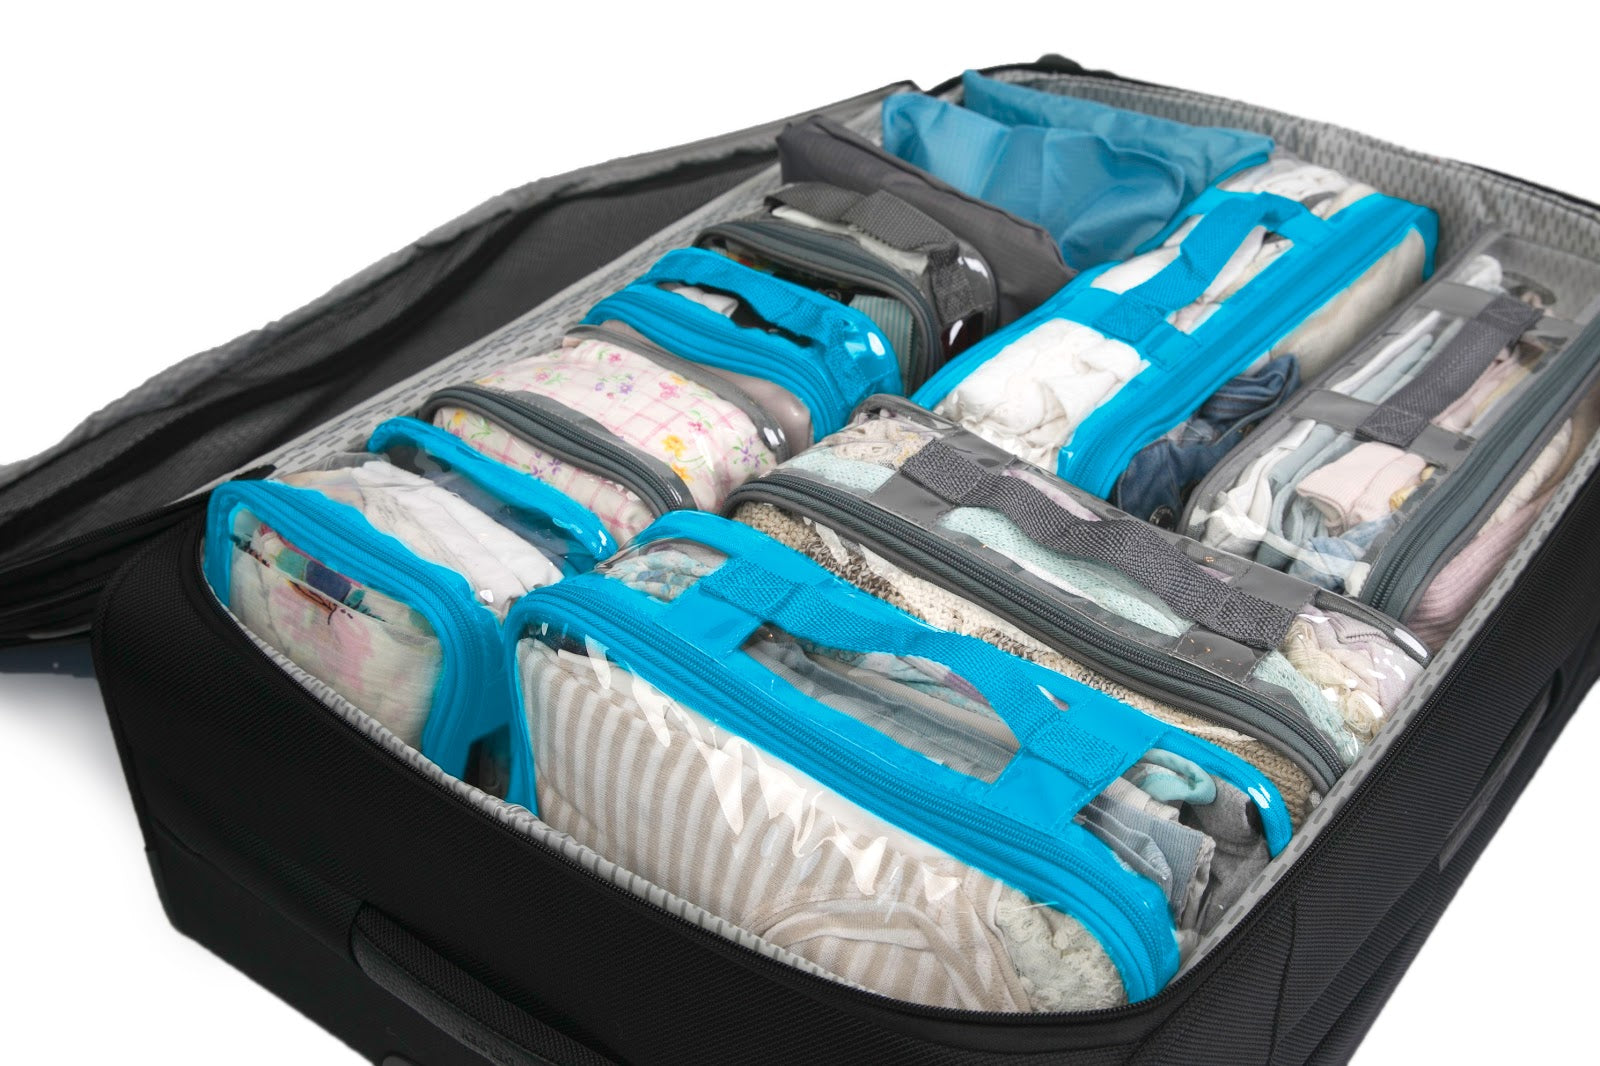 Best packing cubes for carry on luggage system for organization